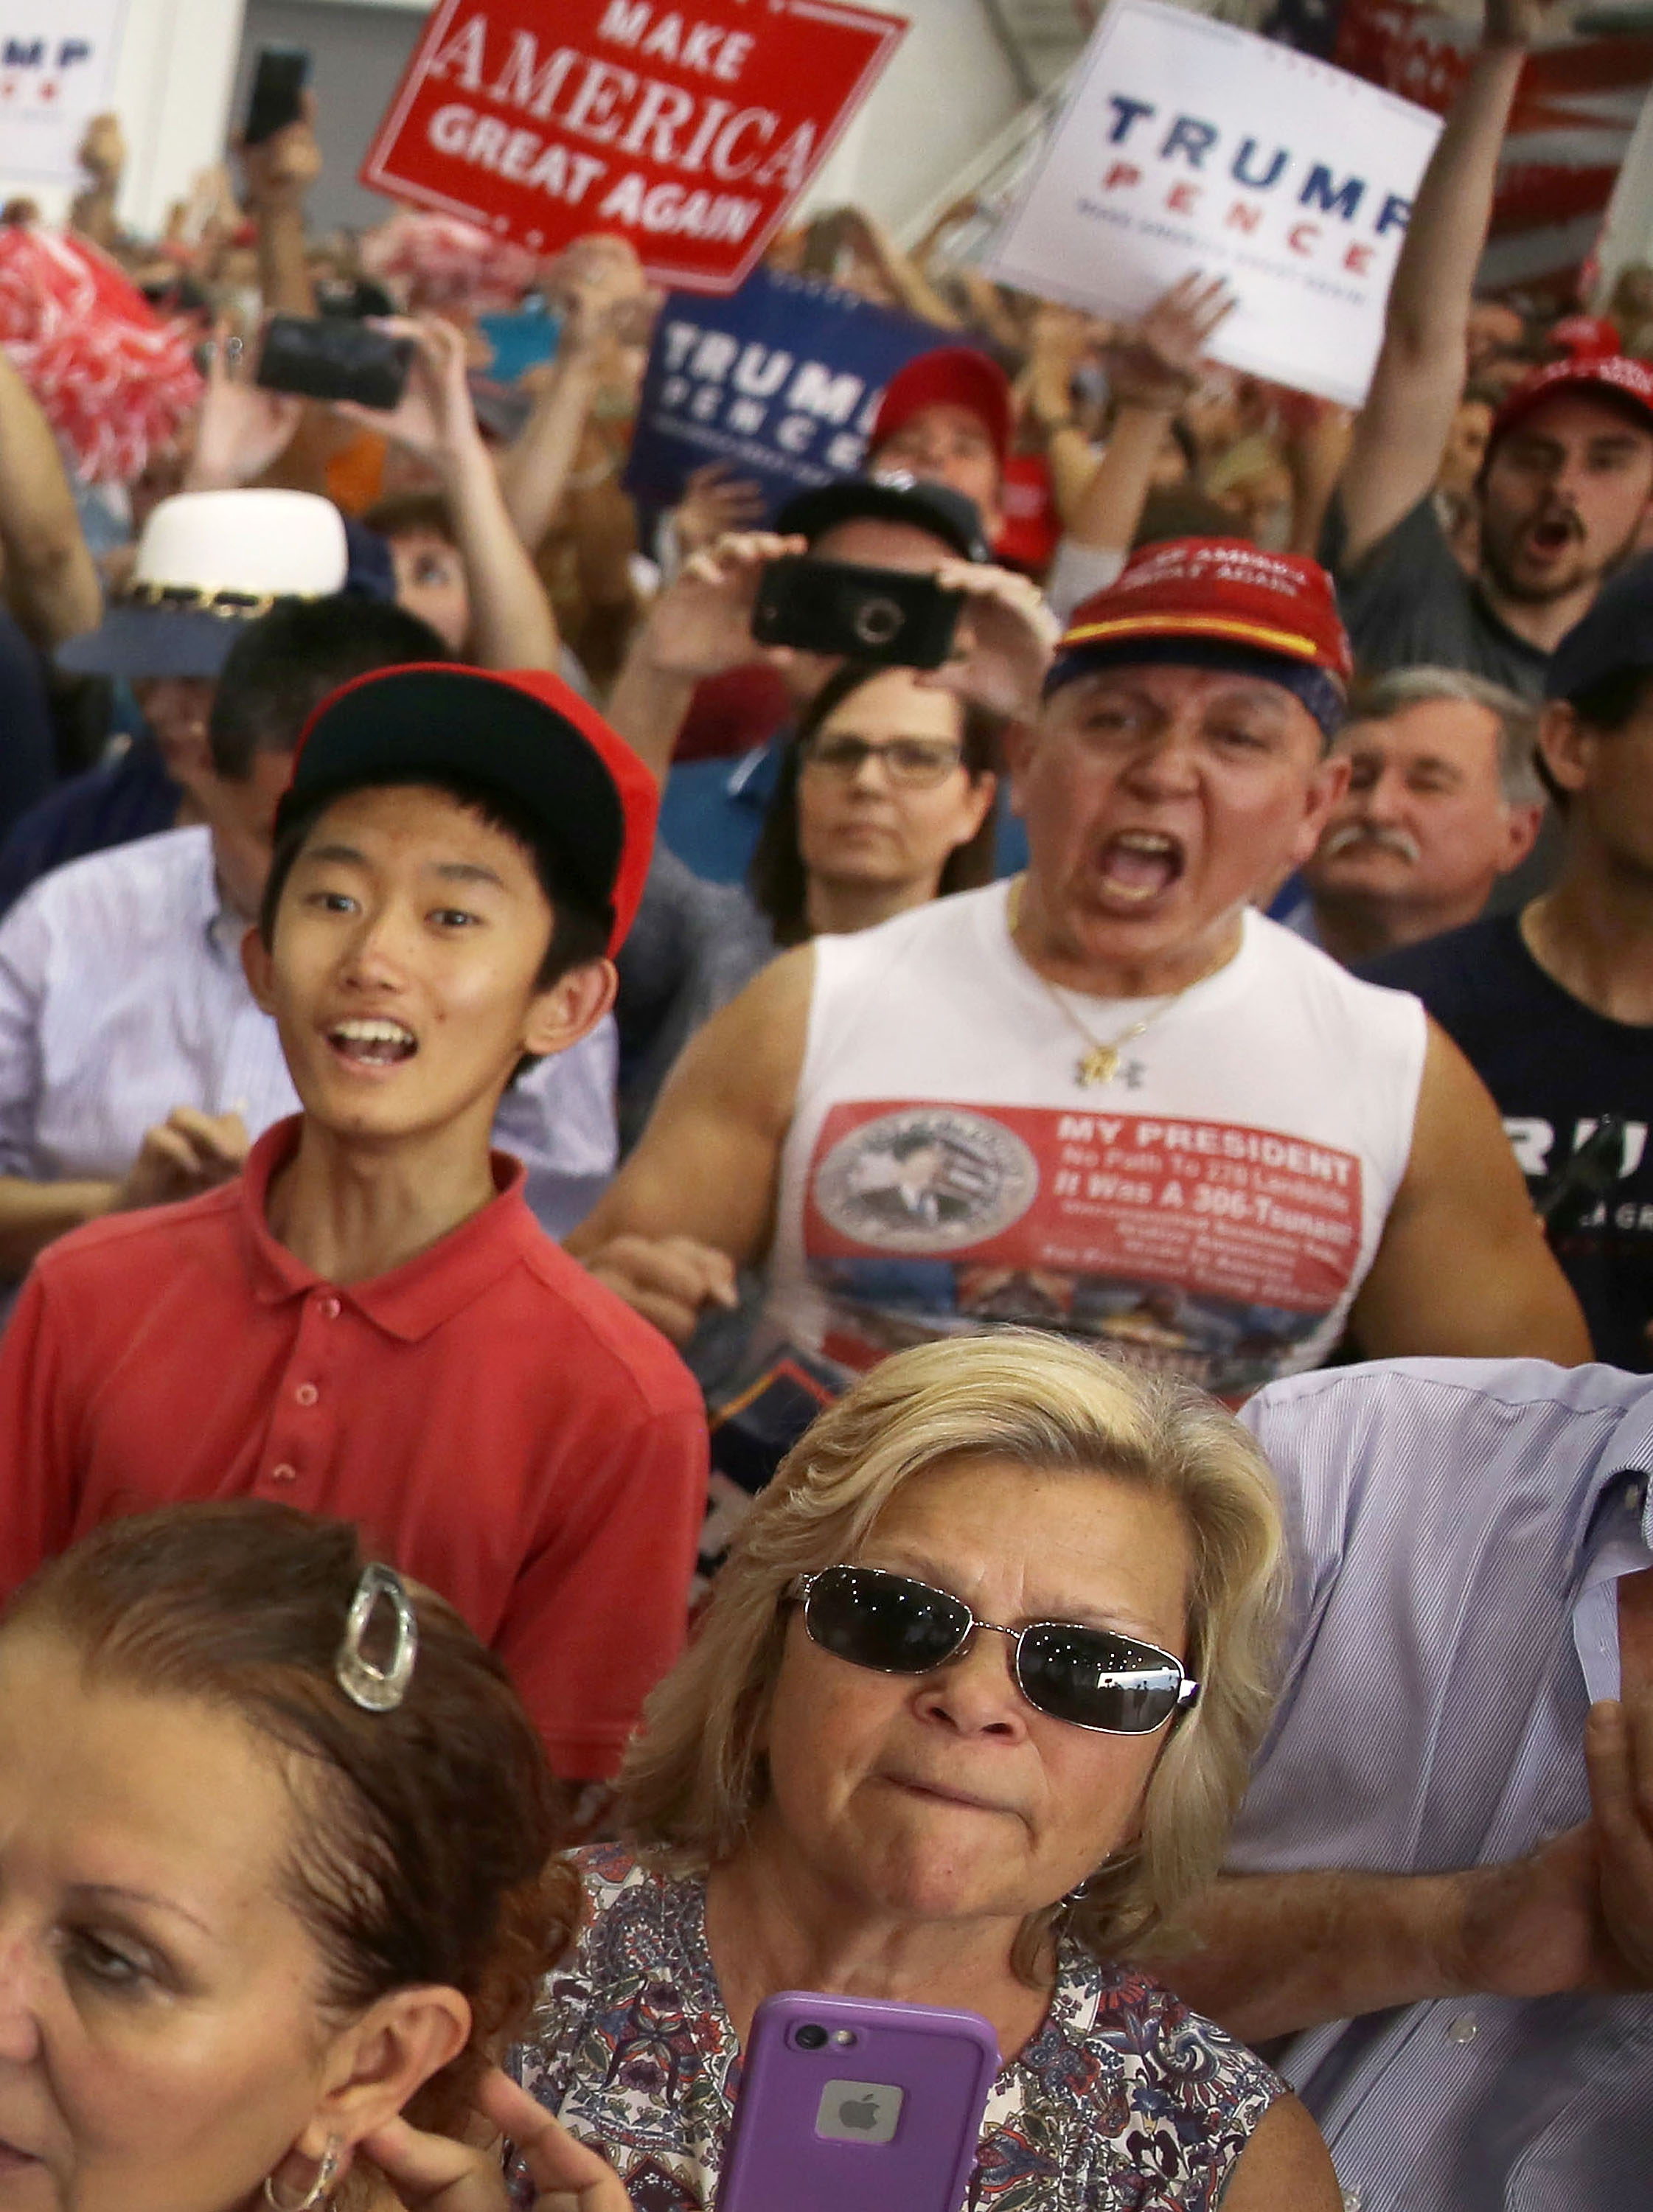 In this file picture from 2017, Cesar Sayoc (far right in red hat) is seen as President Donald Trump speaks during a campaign rally at the AeroMod International hangar at Orlando Melbourne International Airport on February 18, 2017 in Melbourne, Florida. Joe Raedle/Getty Images